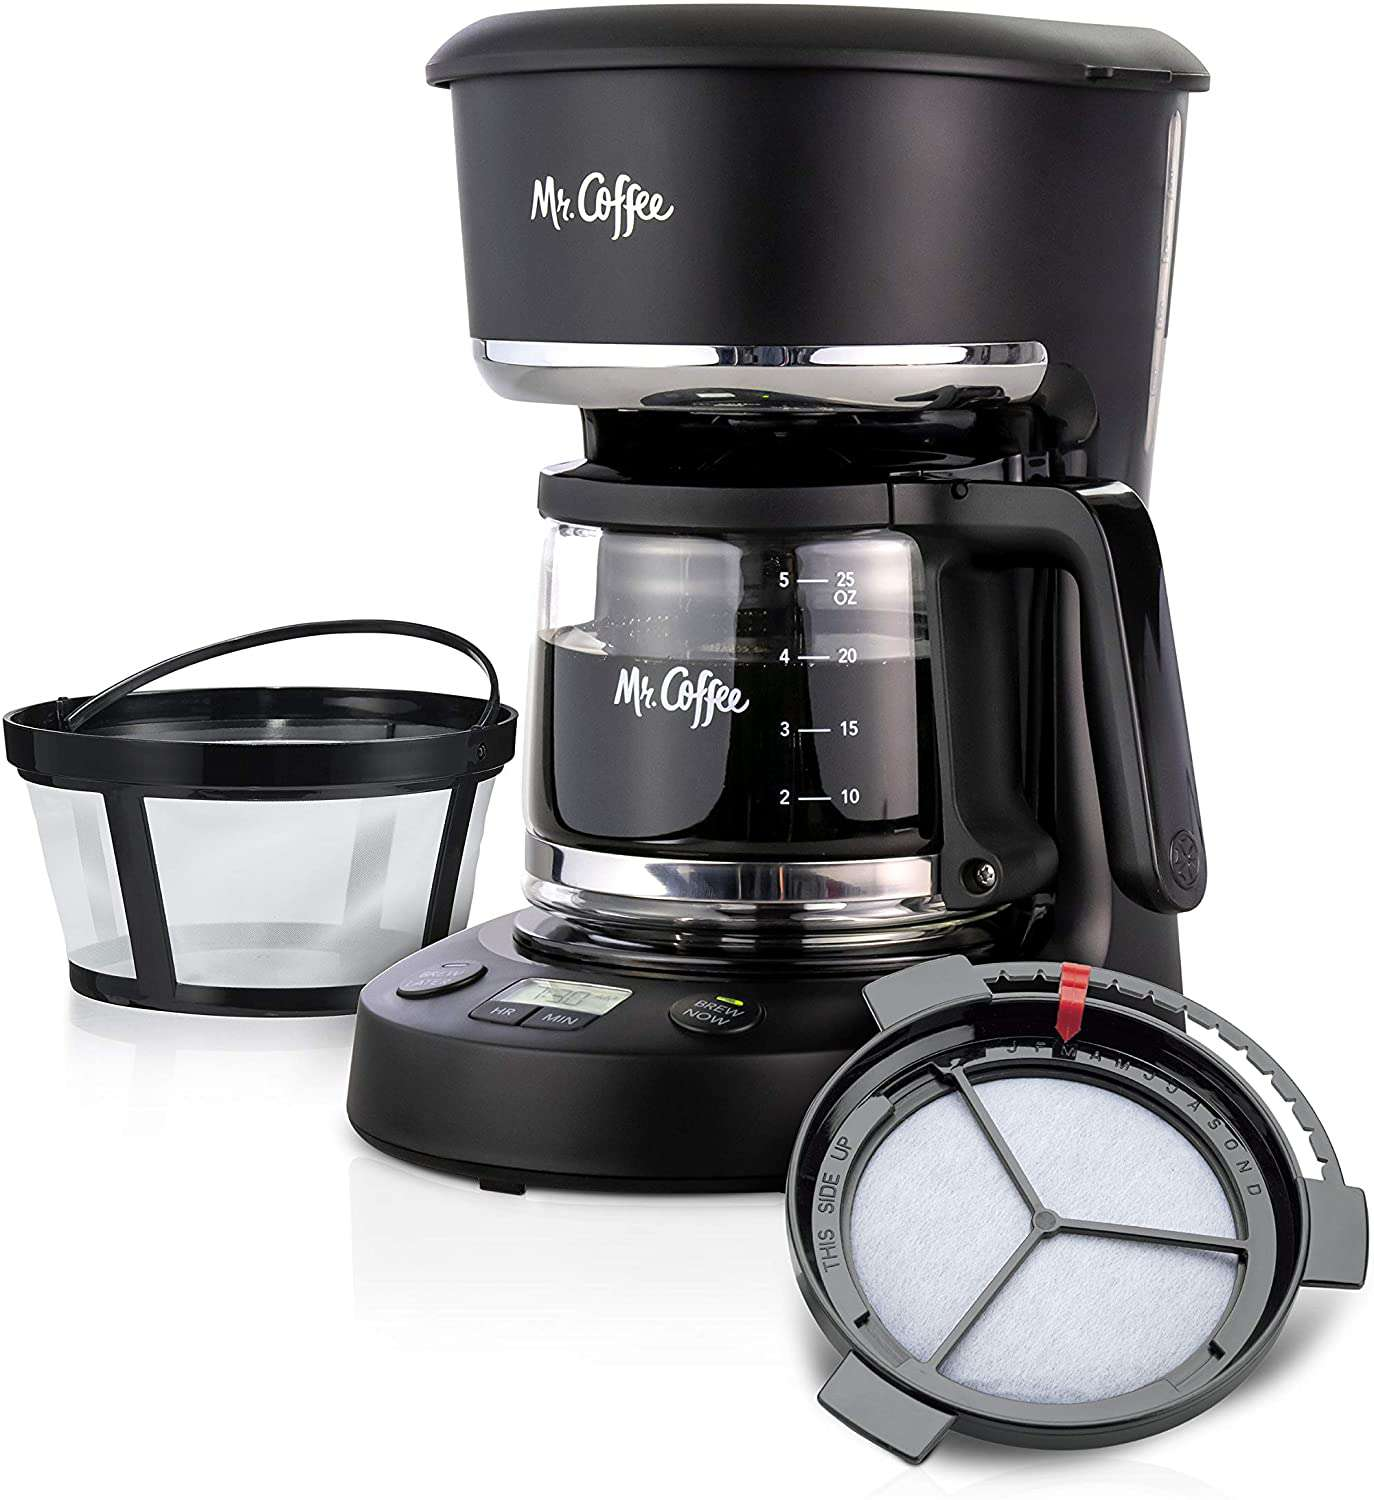 Mr.-Coffee-5-Cup-Programmable-Coffee-Maker